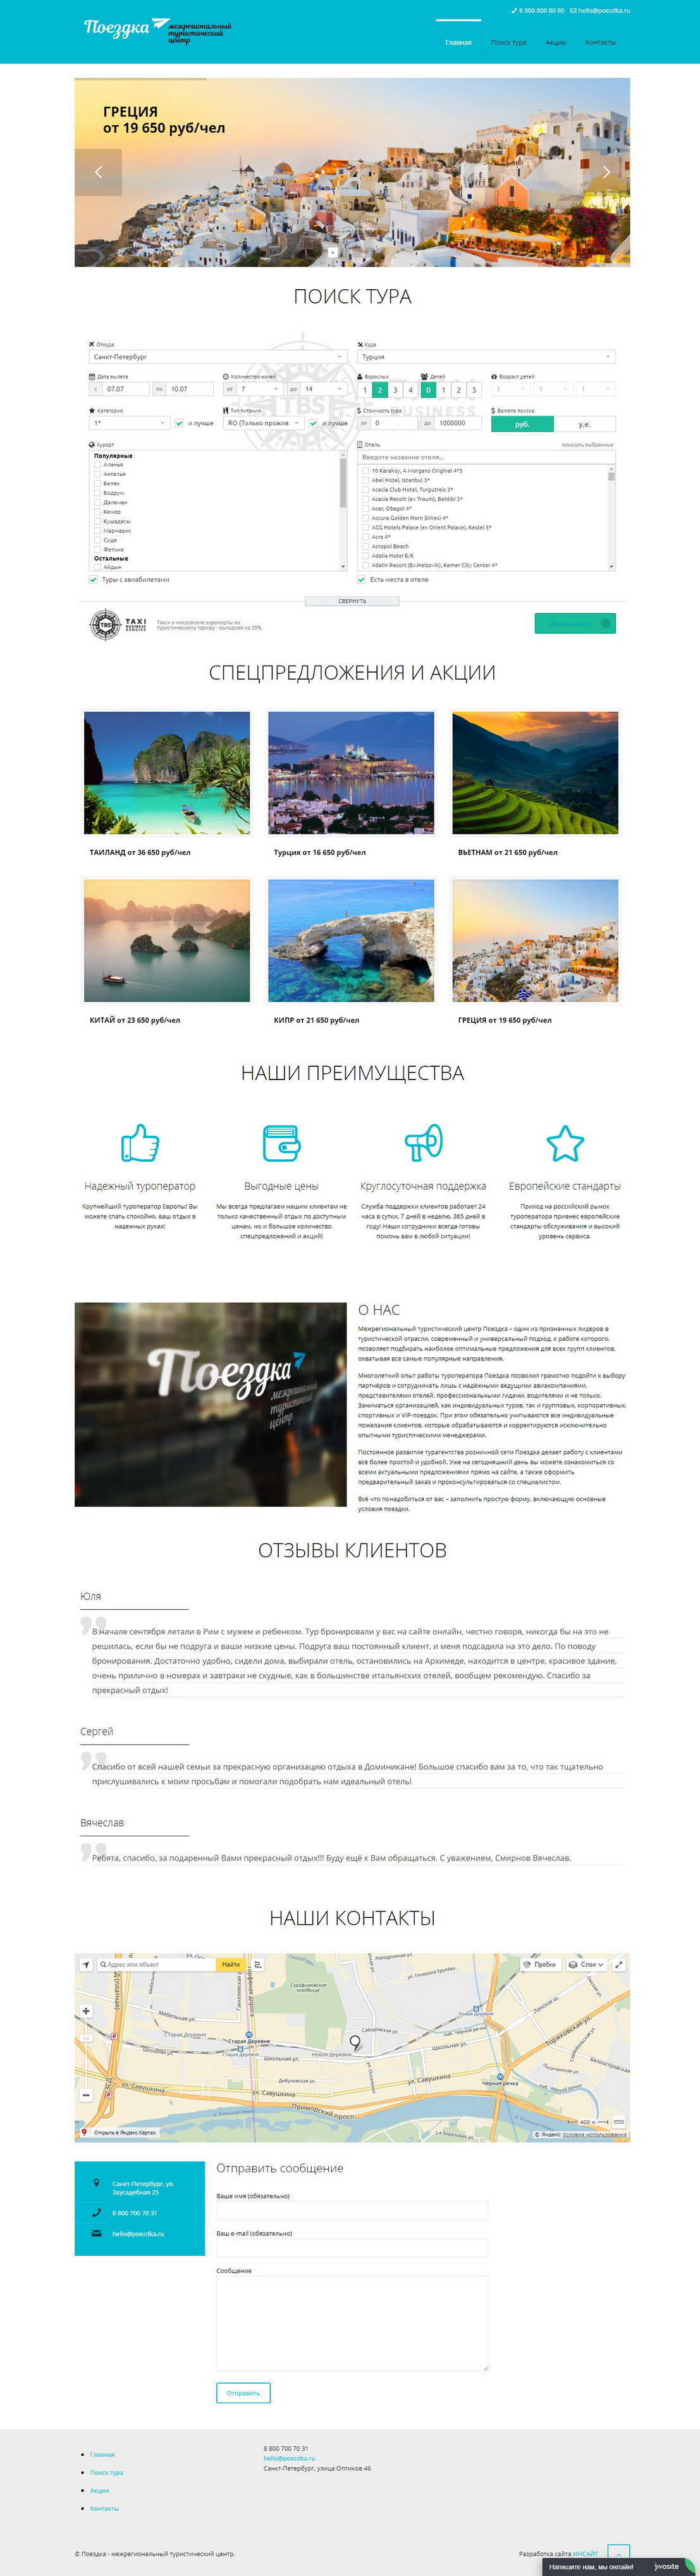 Website development Inter-regional tourist destination trip